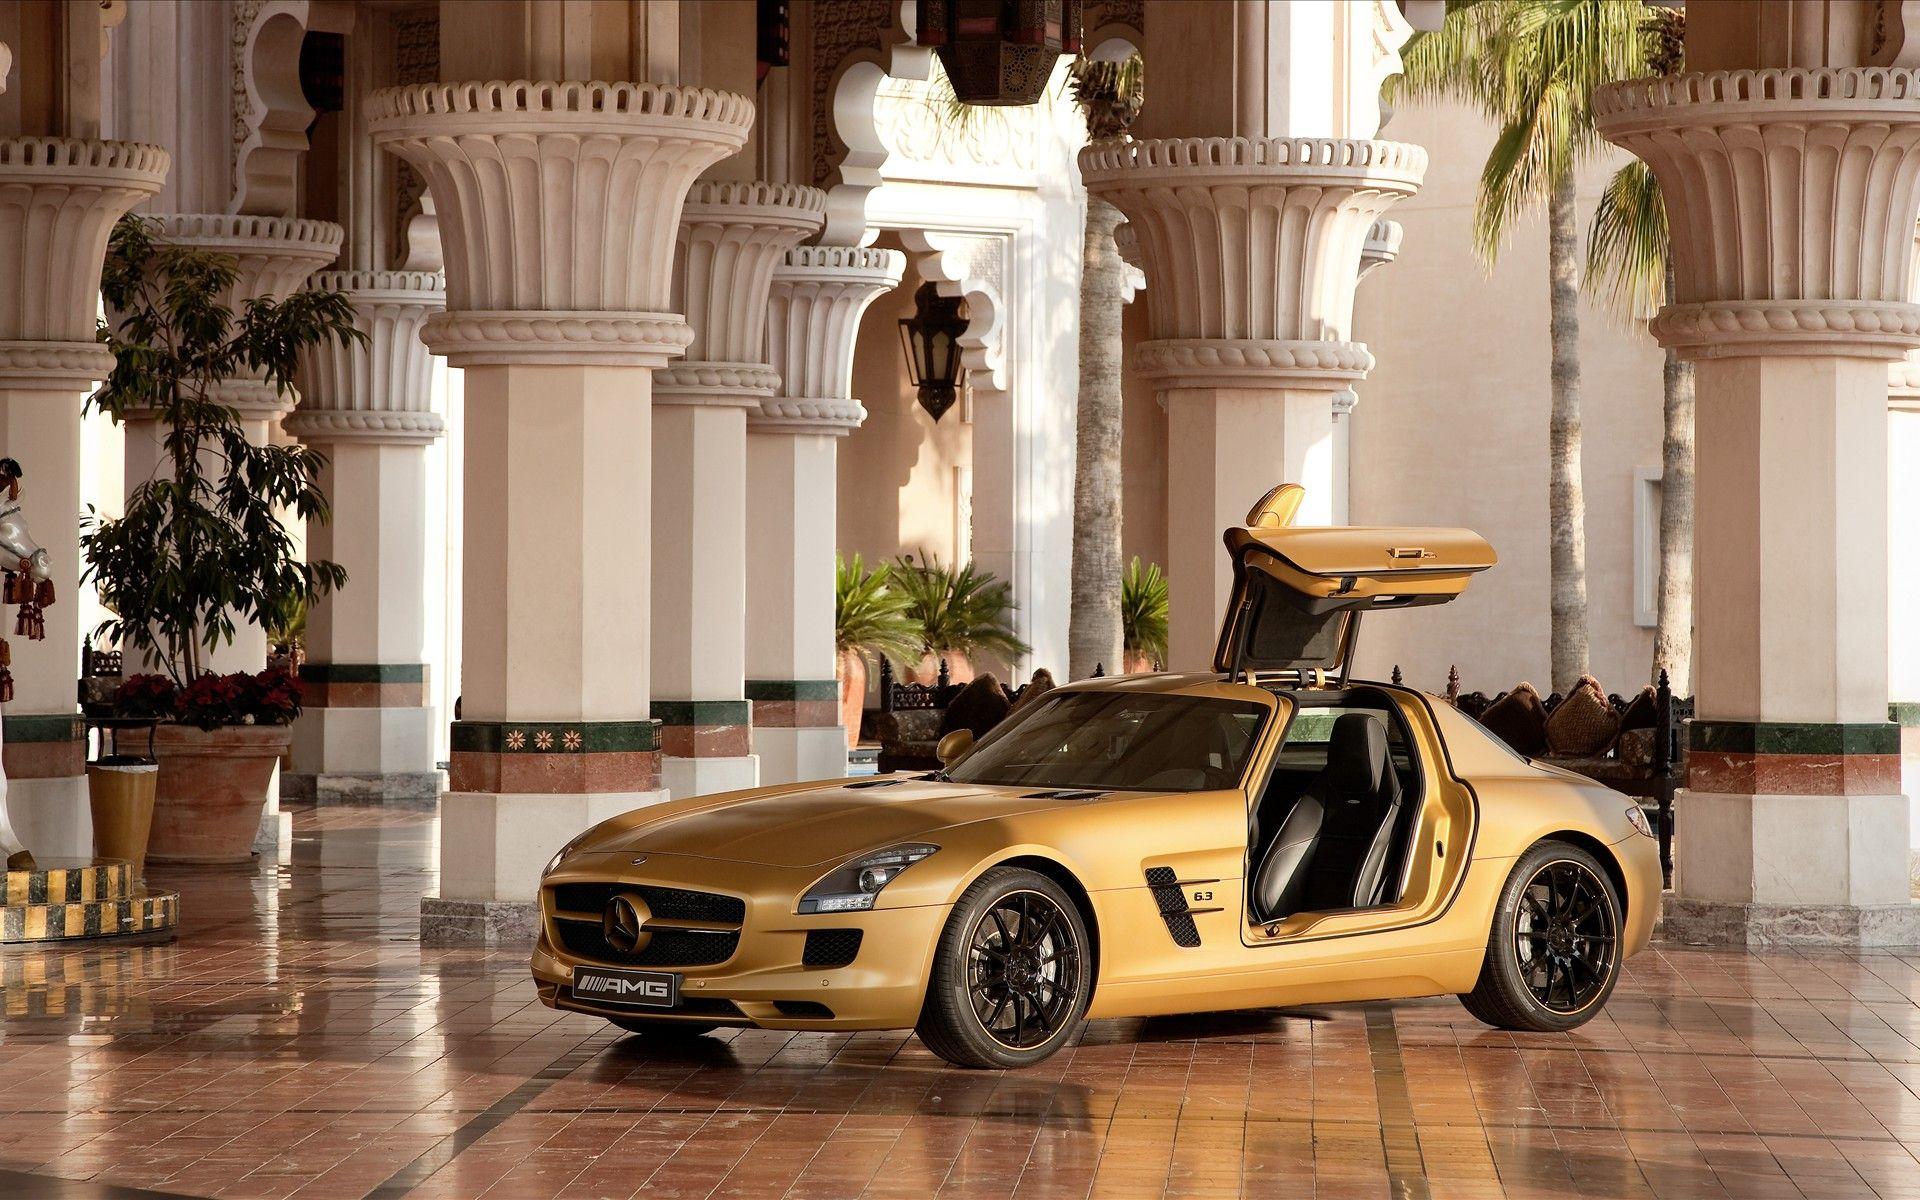 Brabus Mercedes Sl Class Wallpapers Hd Wallpapers Hd Wallpapers